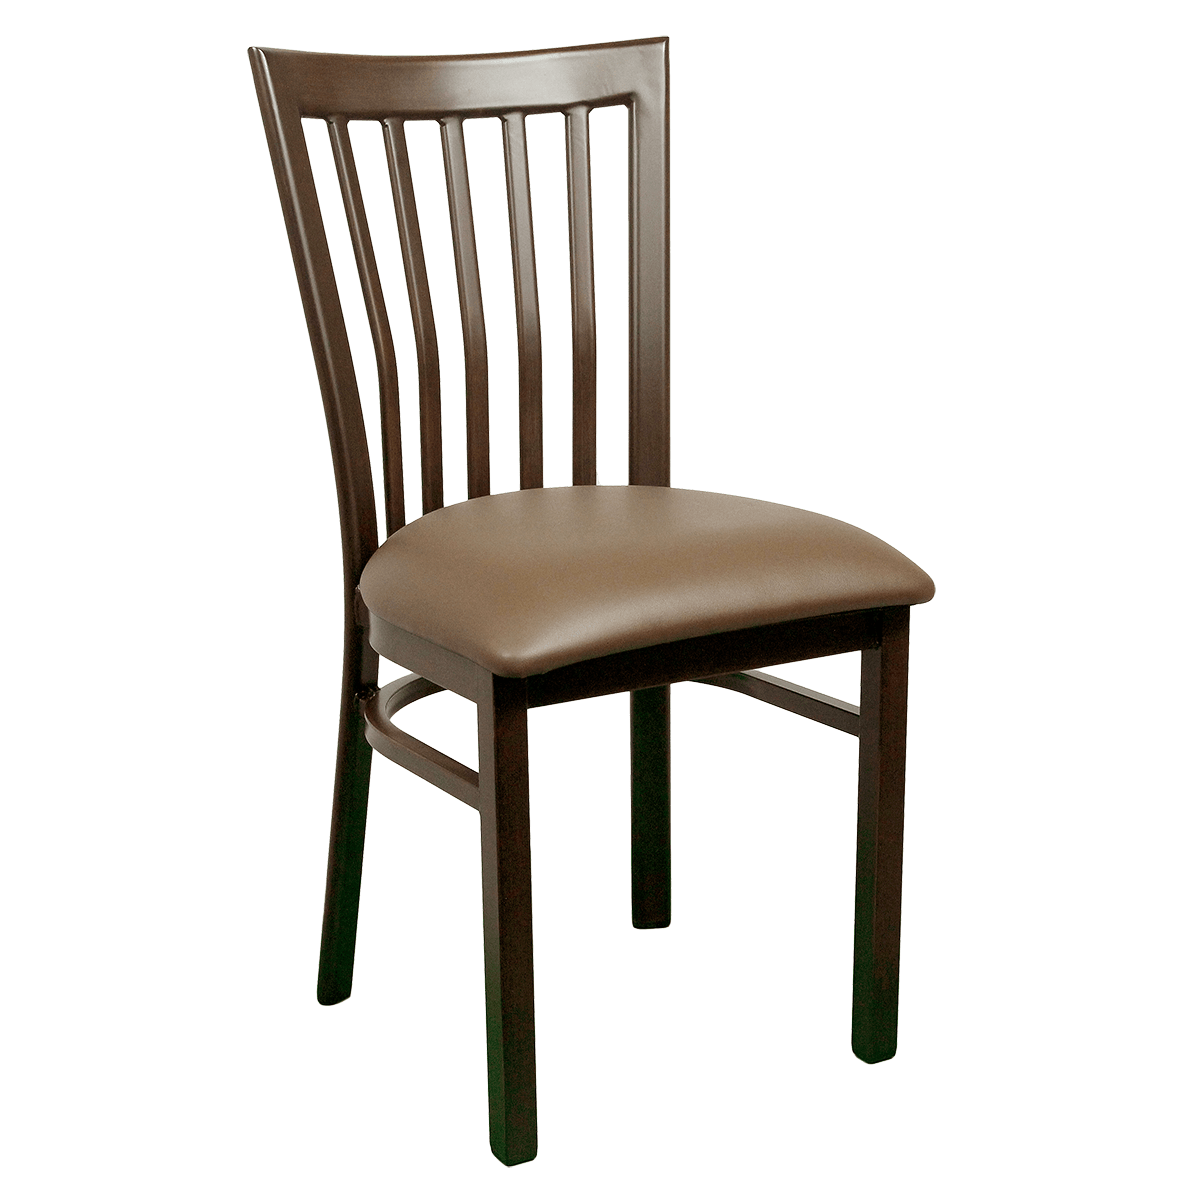 Looking For Chairs Chairs Wood Look Metal Ladder Back Chair